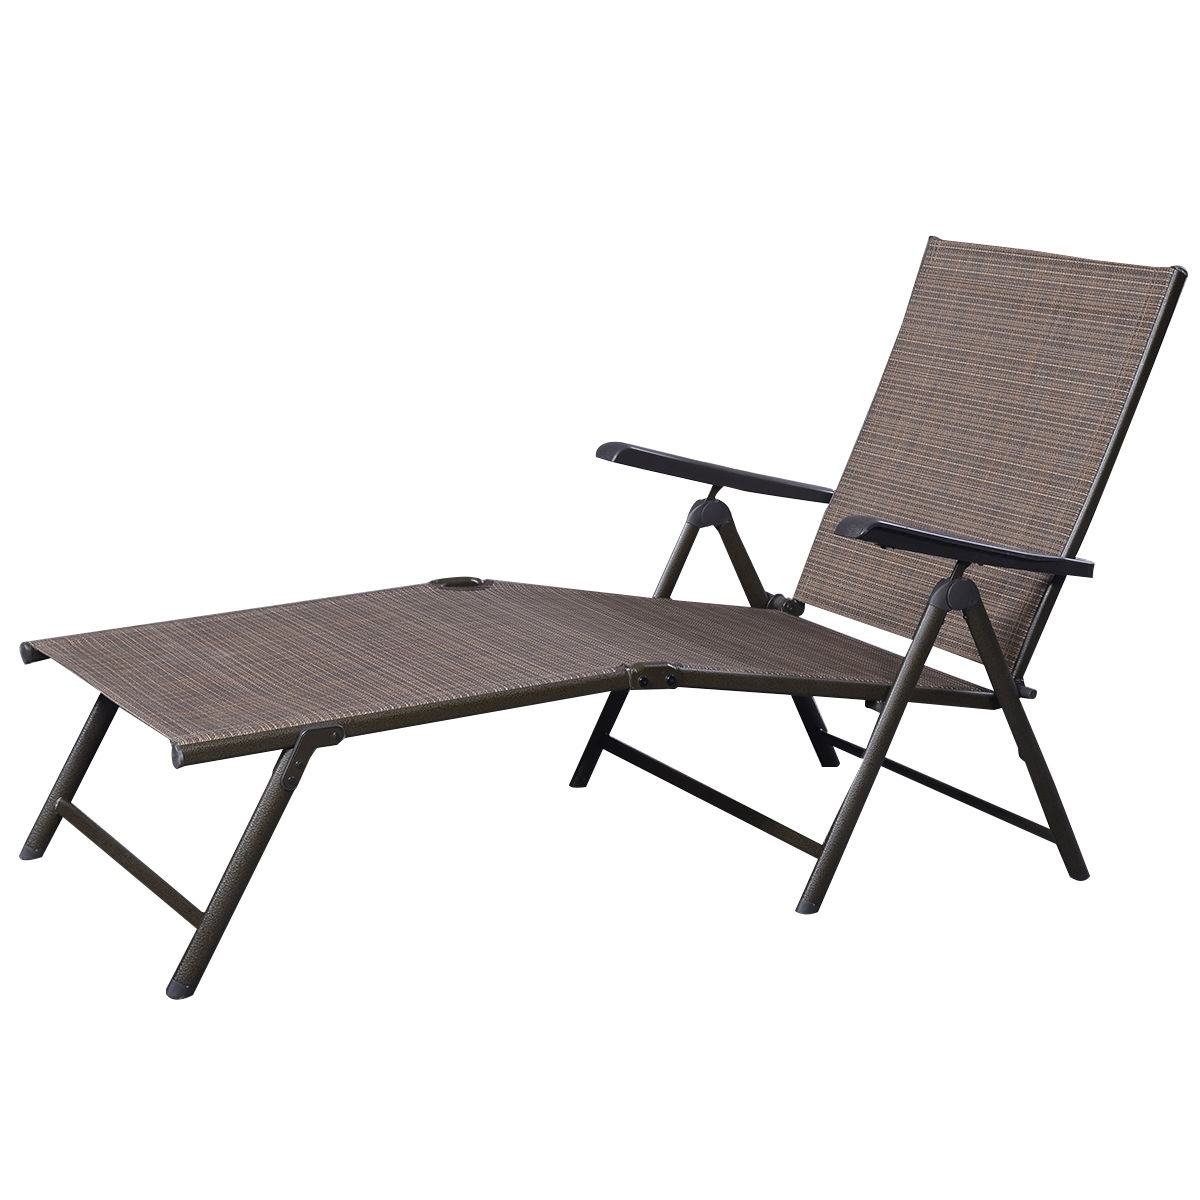 Most Popular Outdoor Adjustable Chaise Lounge Chair – Sunloungers – Outdoor Pertaining To Chaise Lounge Chairs For Outdoors (View 8 of 15)